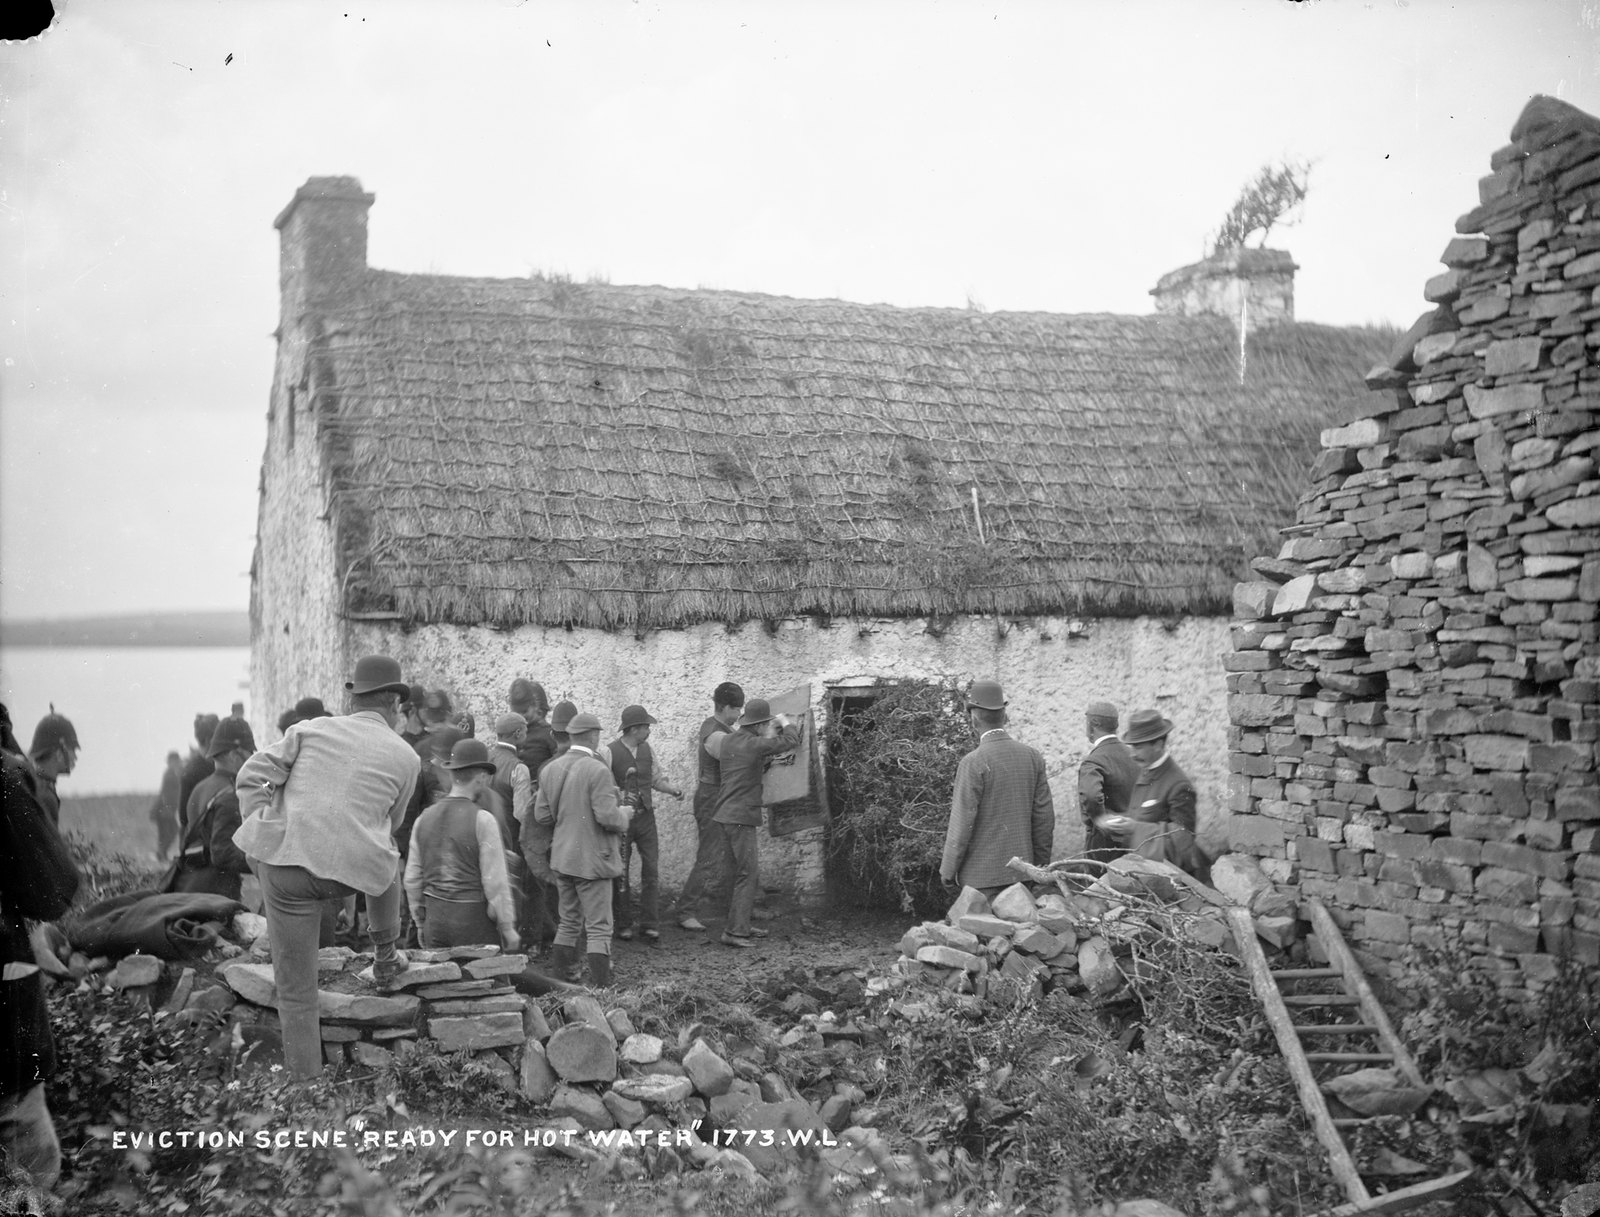 """Eviction scene """"Ready for hot water"""" 